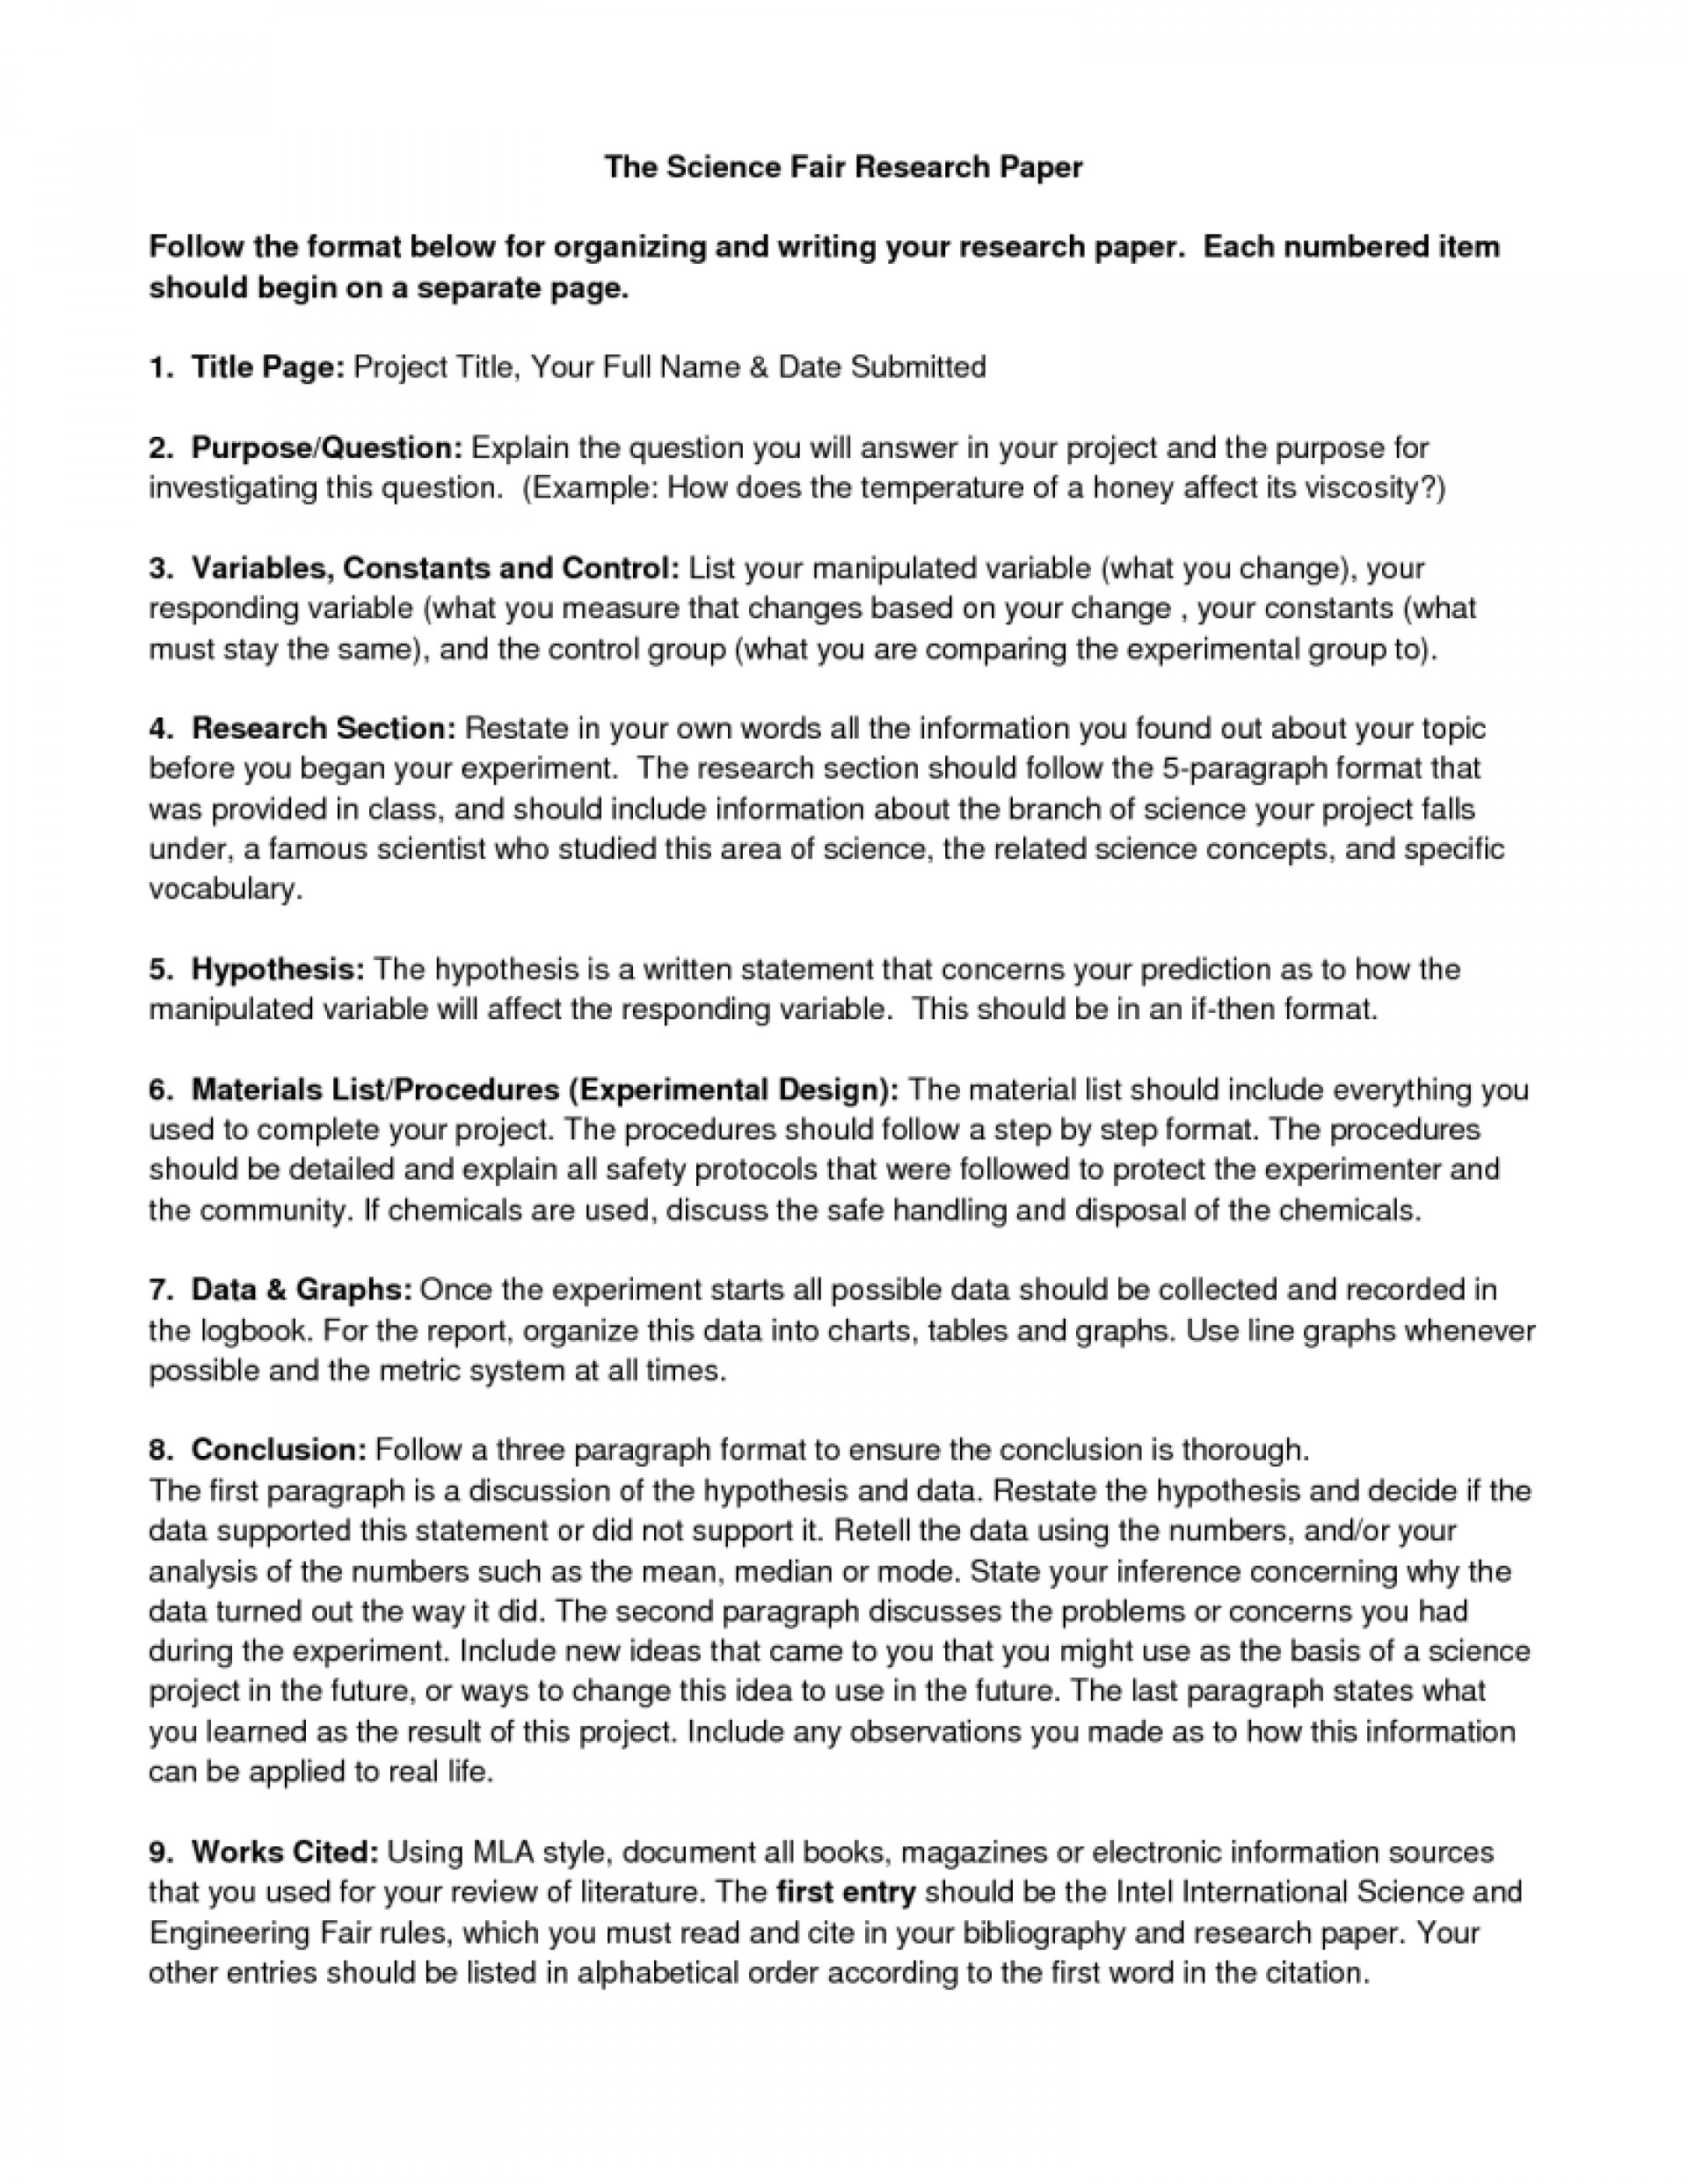 004 Ideas Of Science Fair Research Paper Outline Unique Political Guidelines Guidelinesresize8002c1035 How To Write Unforgettable A For High School 1920